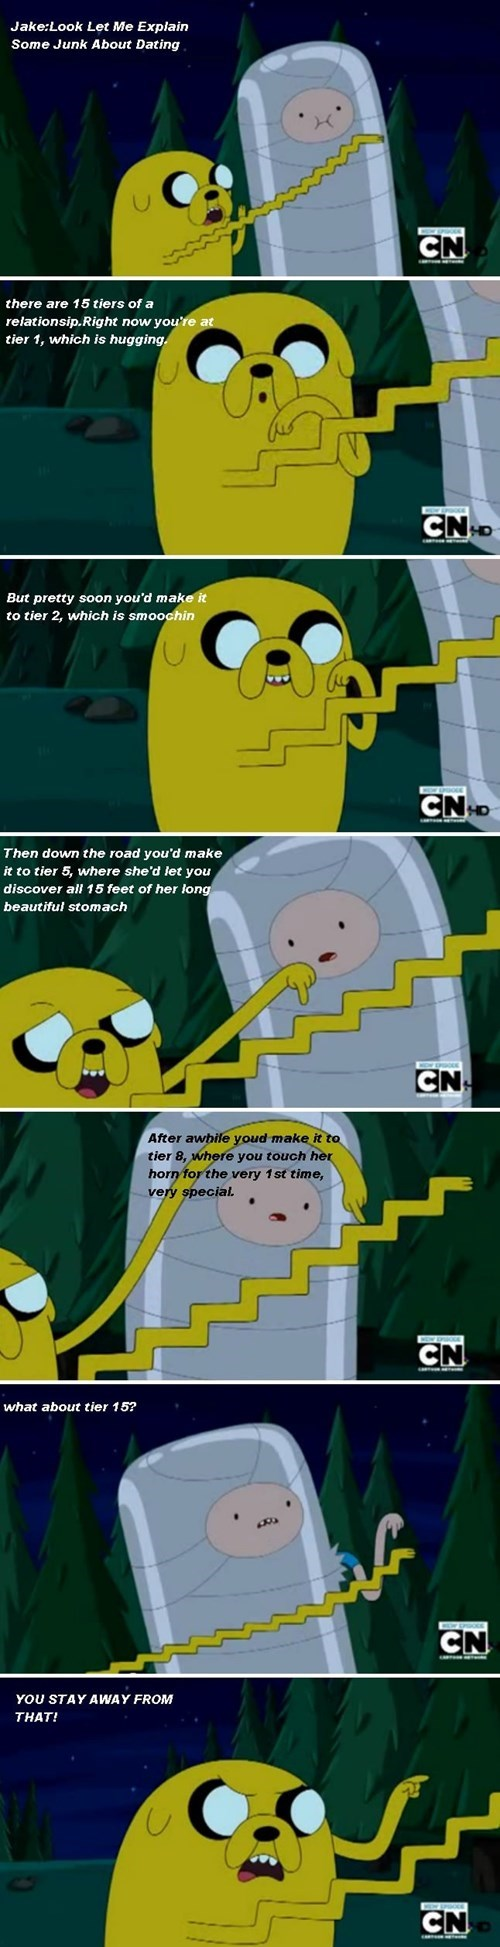 Jake,finn,funny,adventure time